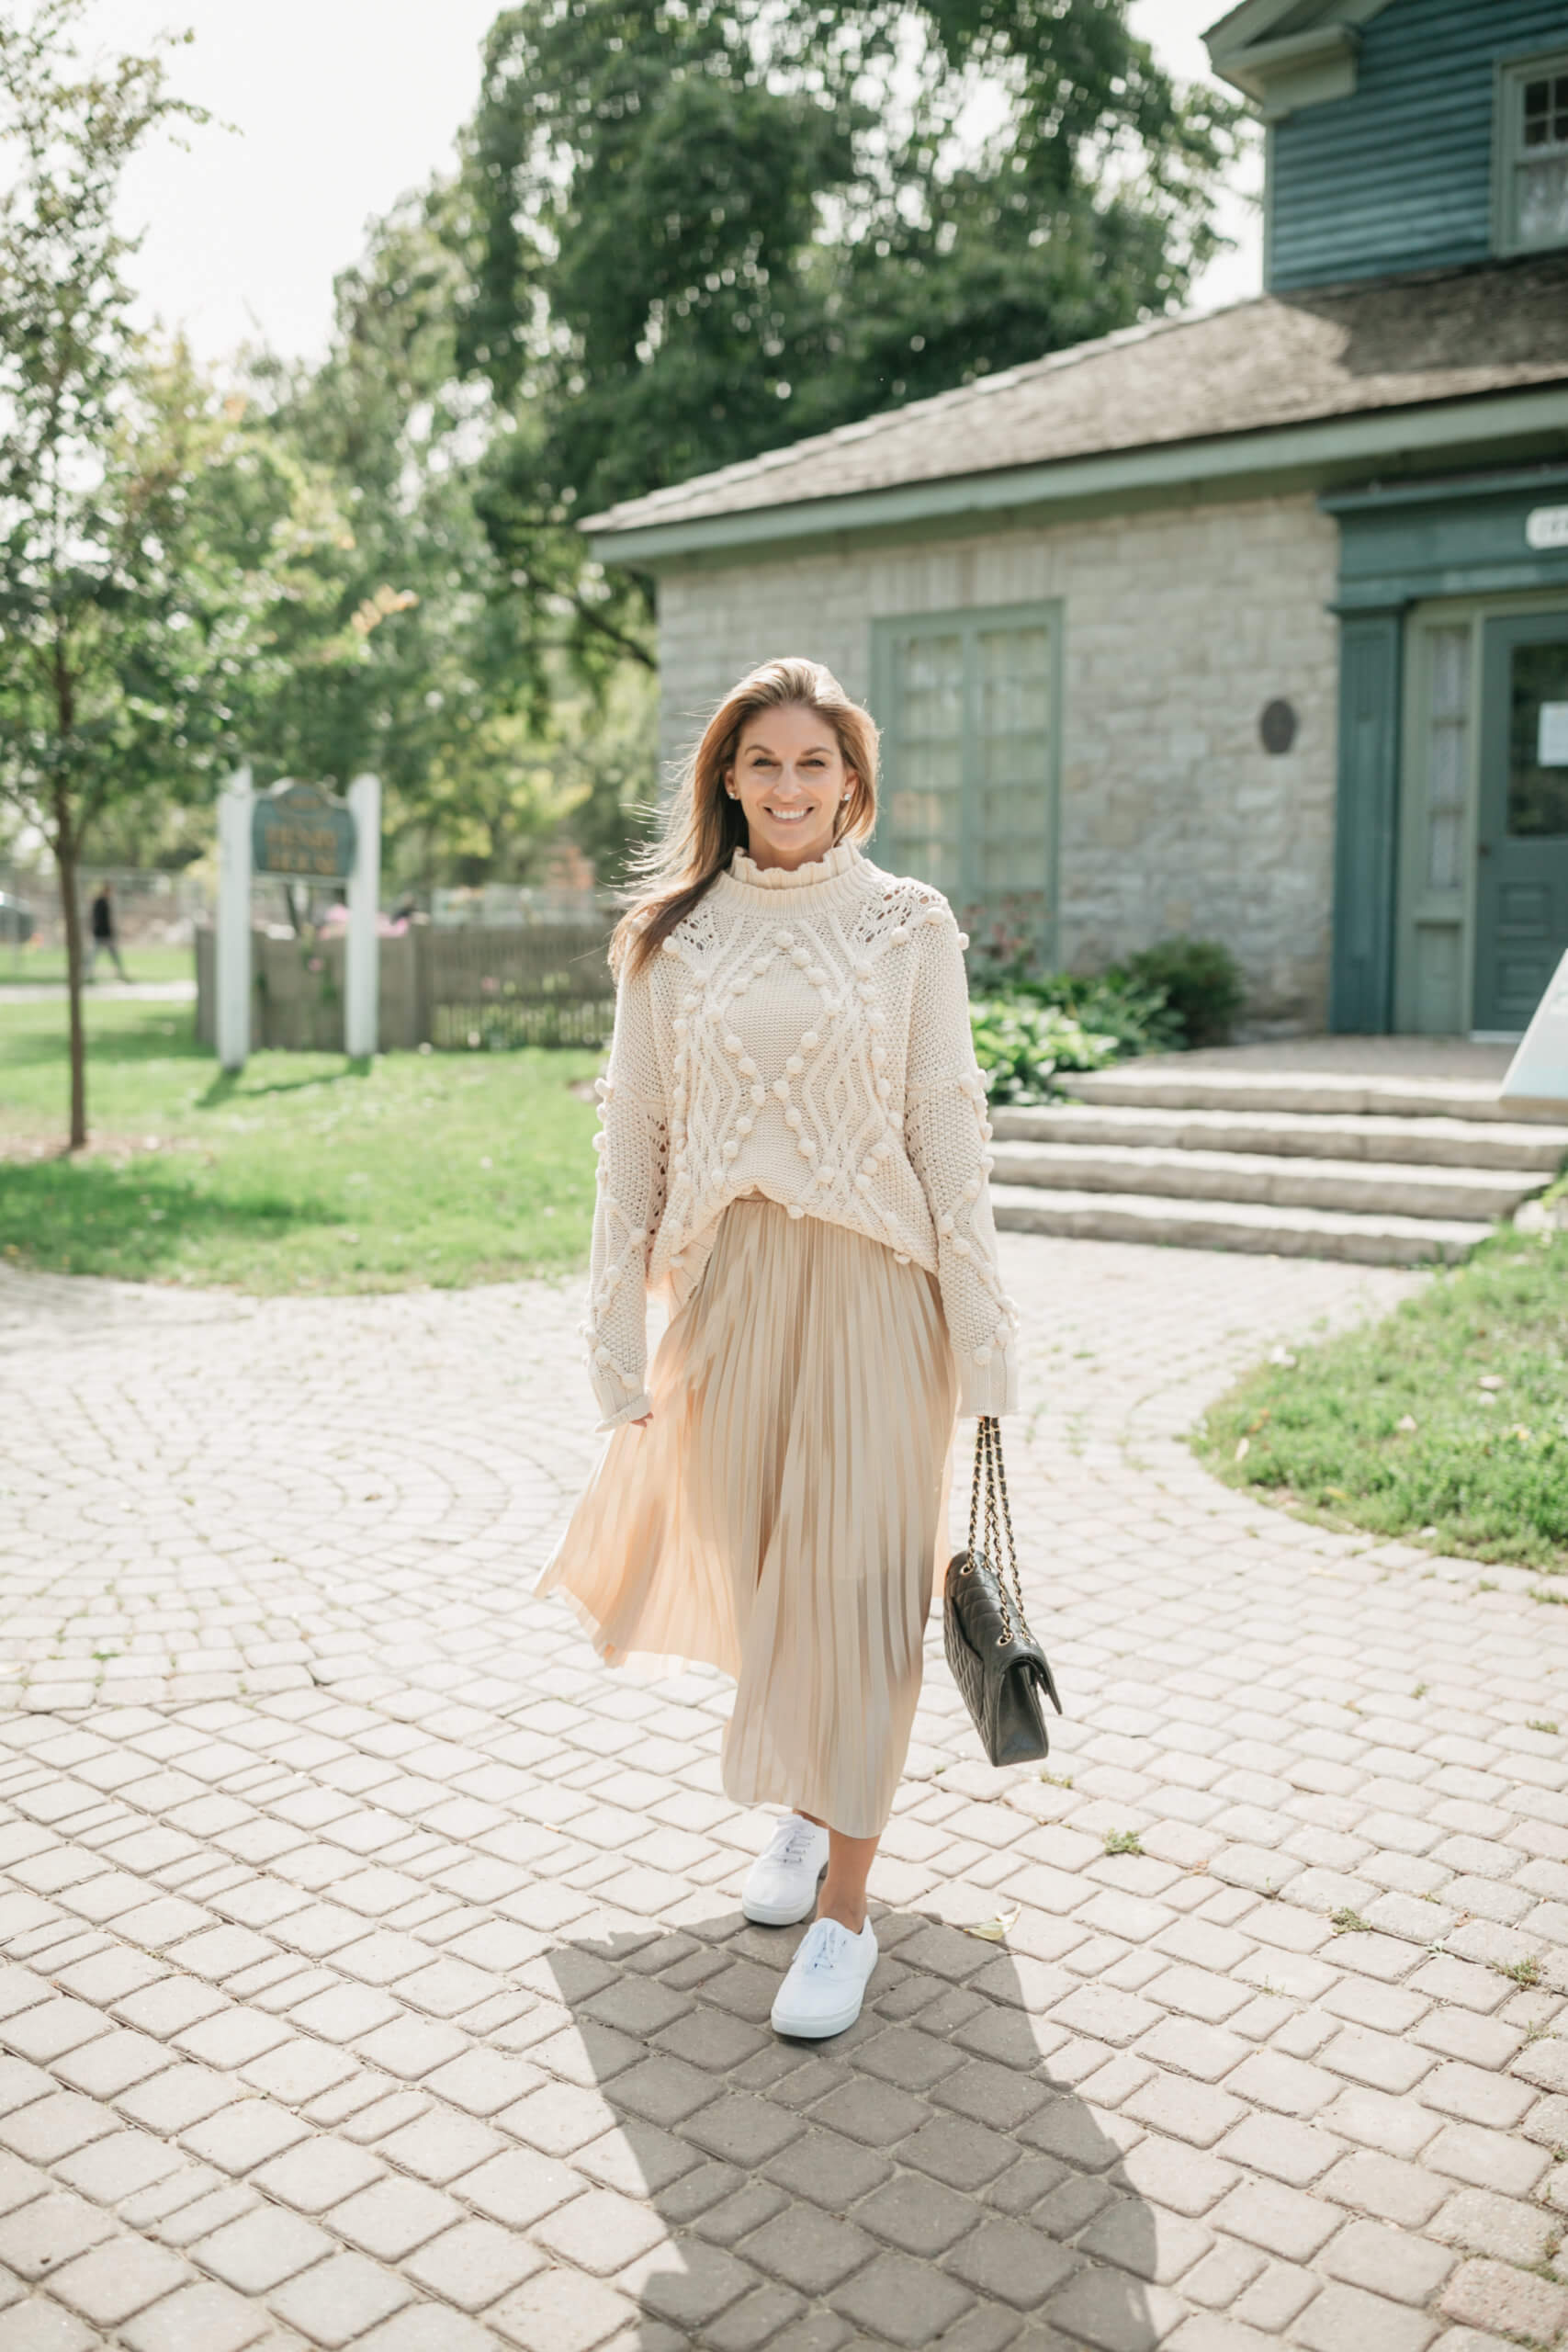 Chicwish HOLLOW OUT POM-POM CABLE KNIT SWEATER IN CREAM; chicwish FULL PLEATED MIDI SKIRT IN CHAMPAGNE; Fall look with maxi skirt; chanel flap bag; sparkleshinylove